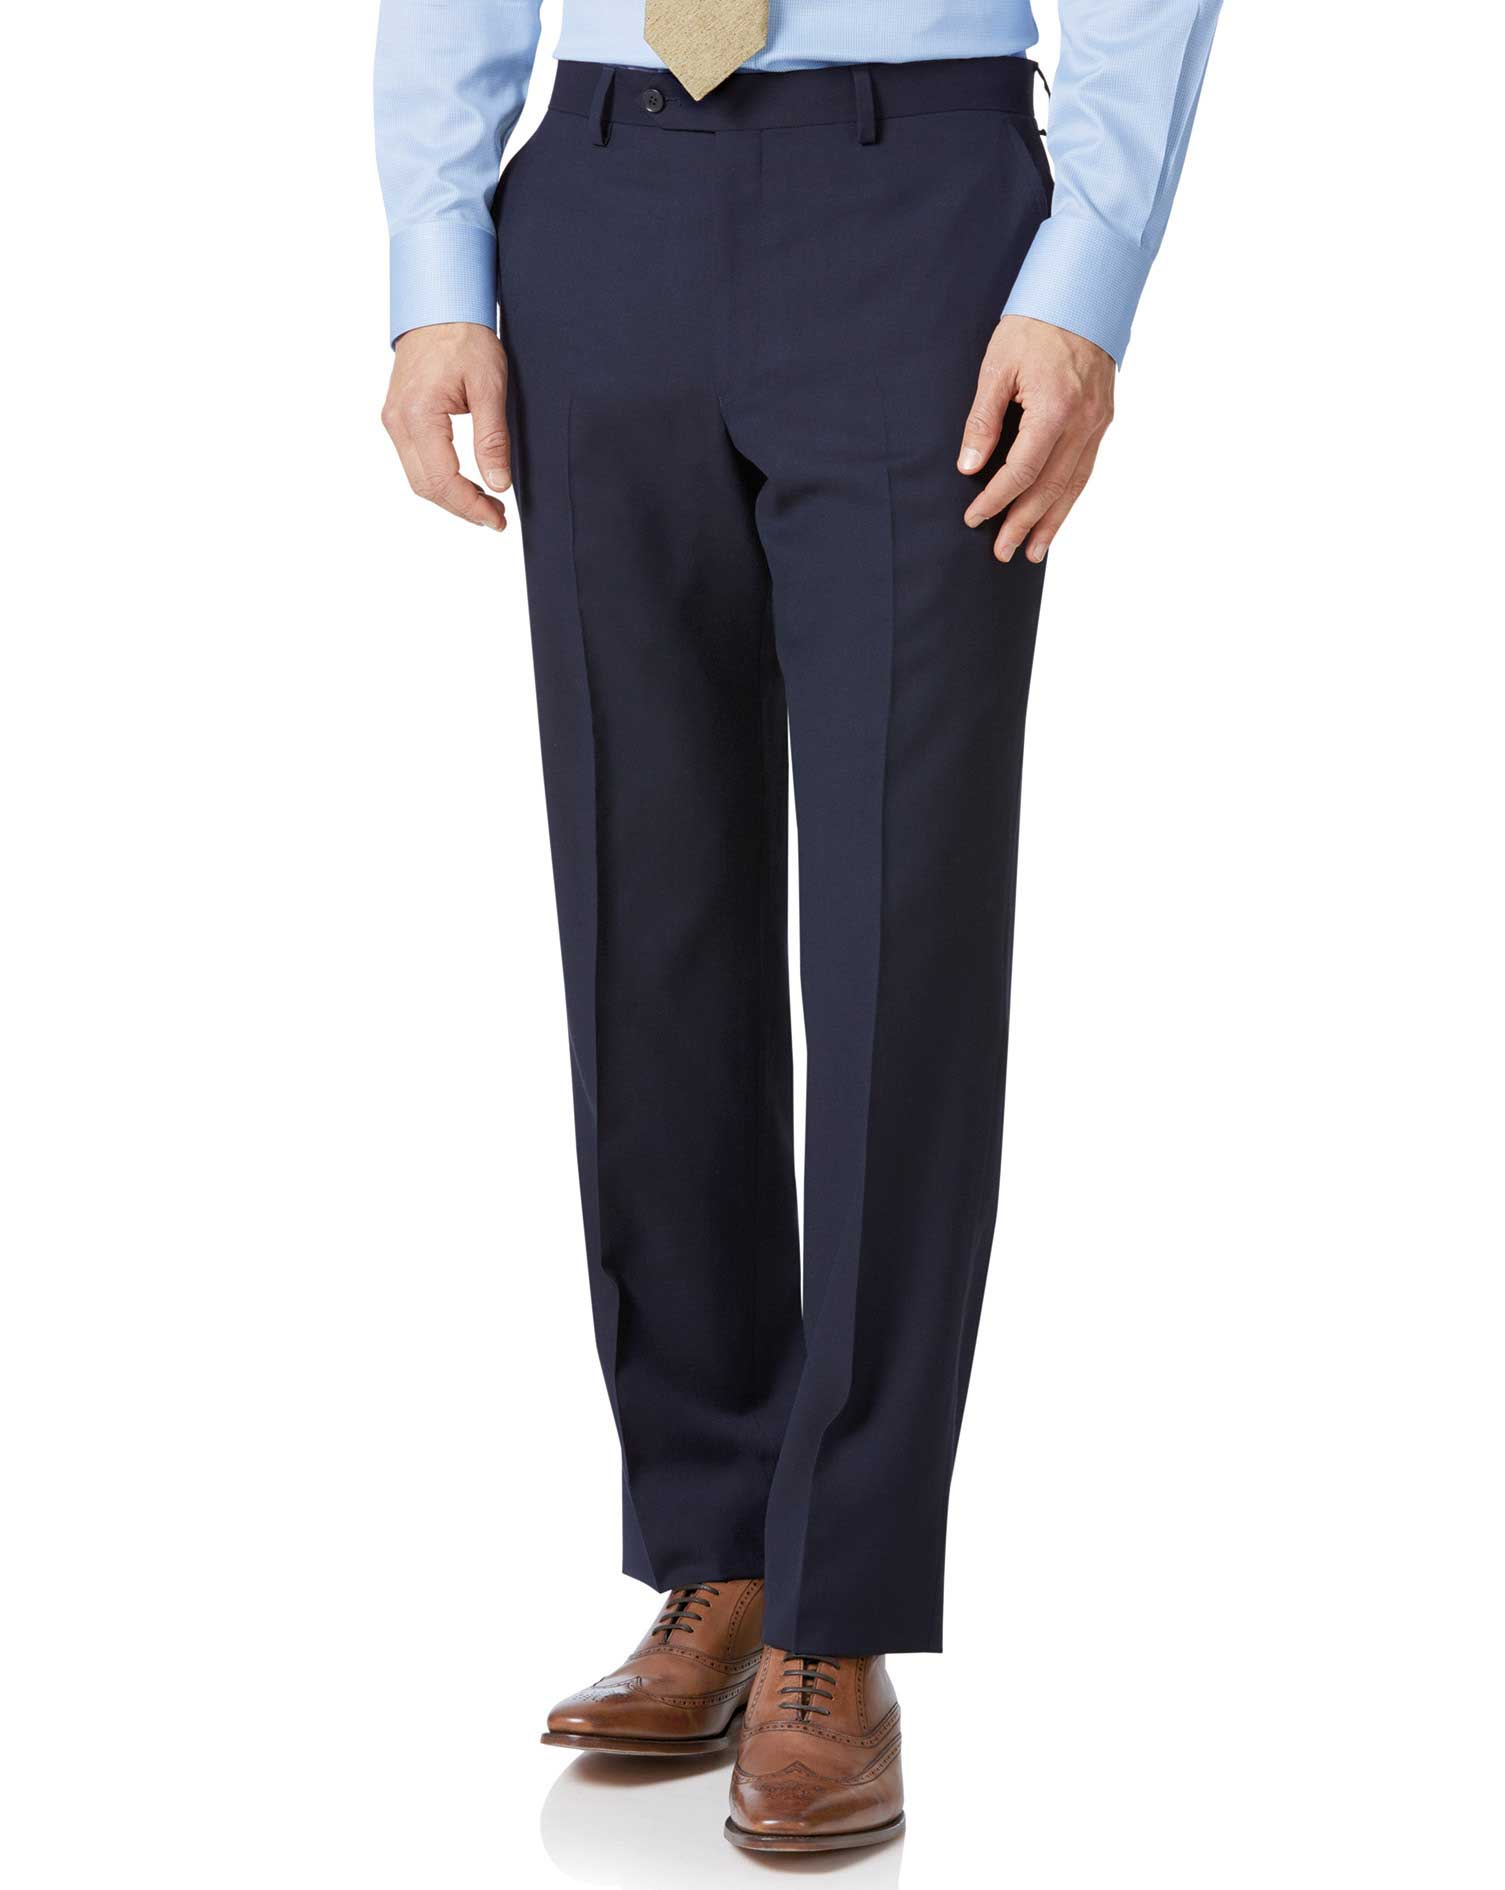 Navy Classic Fit Twill Business Suit Trousers Size W30 L34 by Charles Tyrwhitt